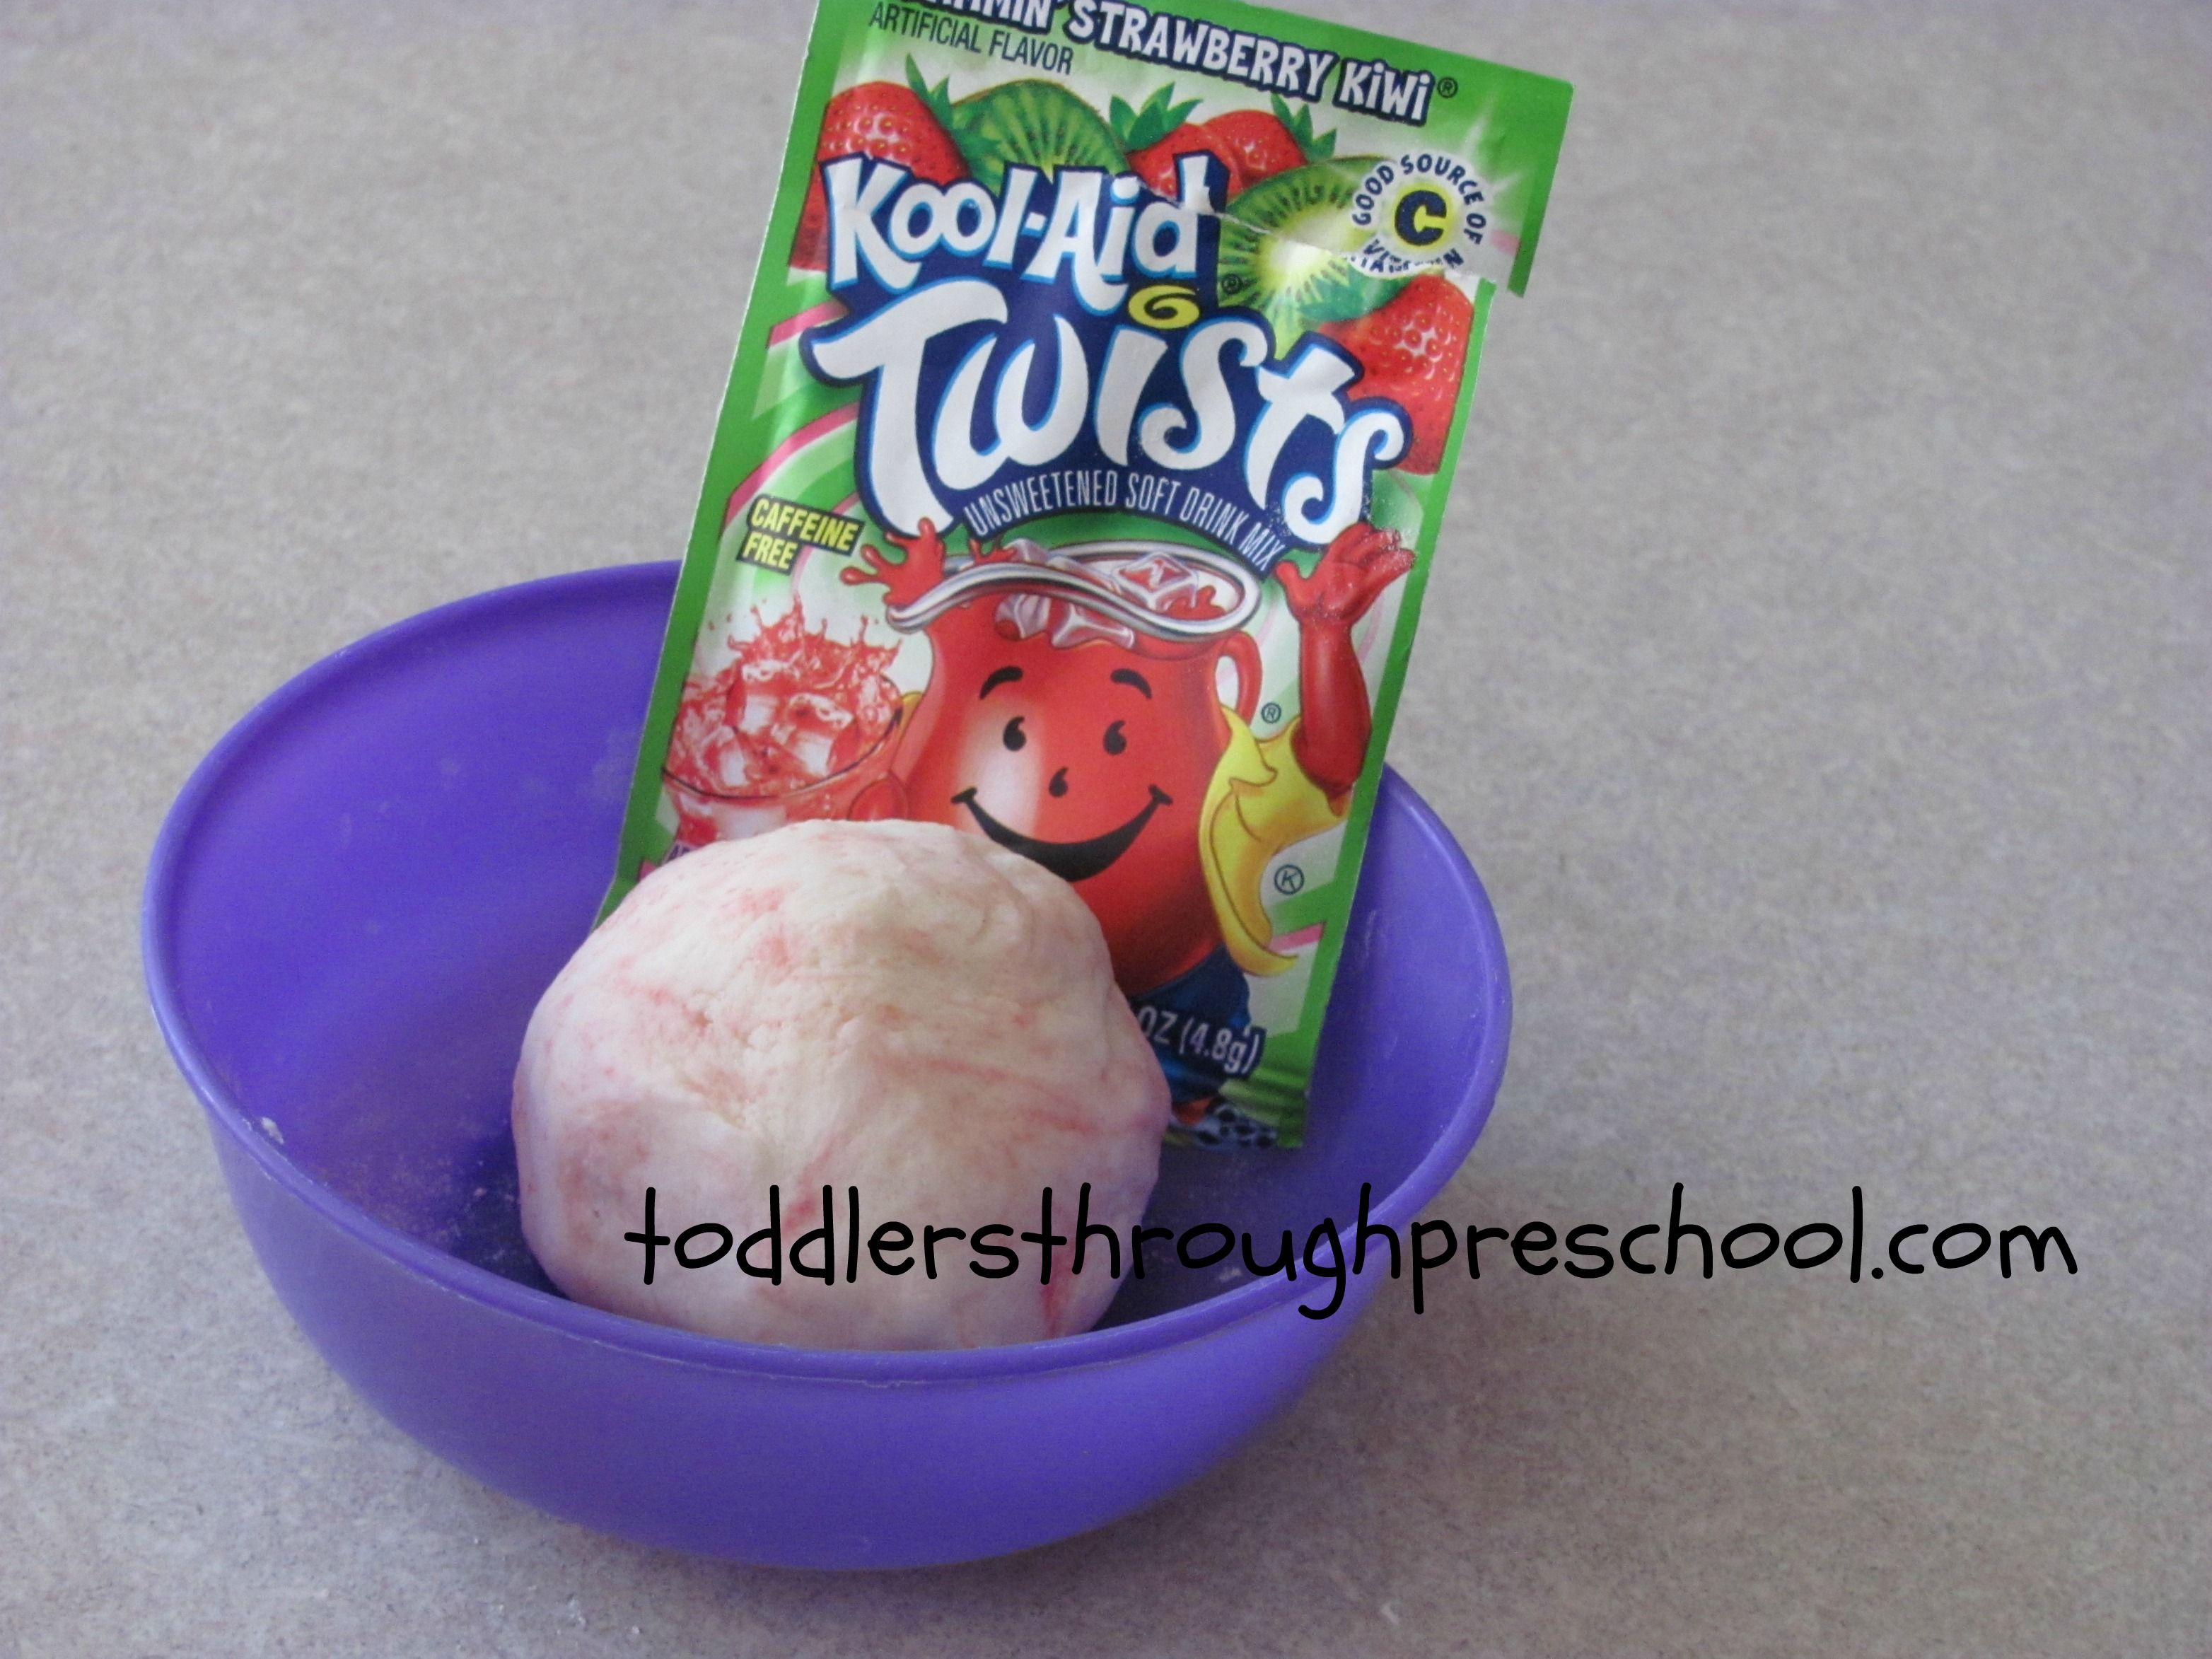 Koolaid playdough recipe. No cooking. Smells yummy and is